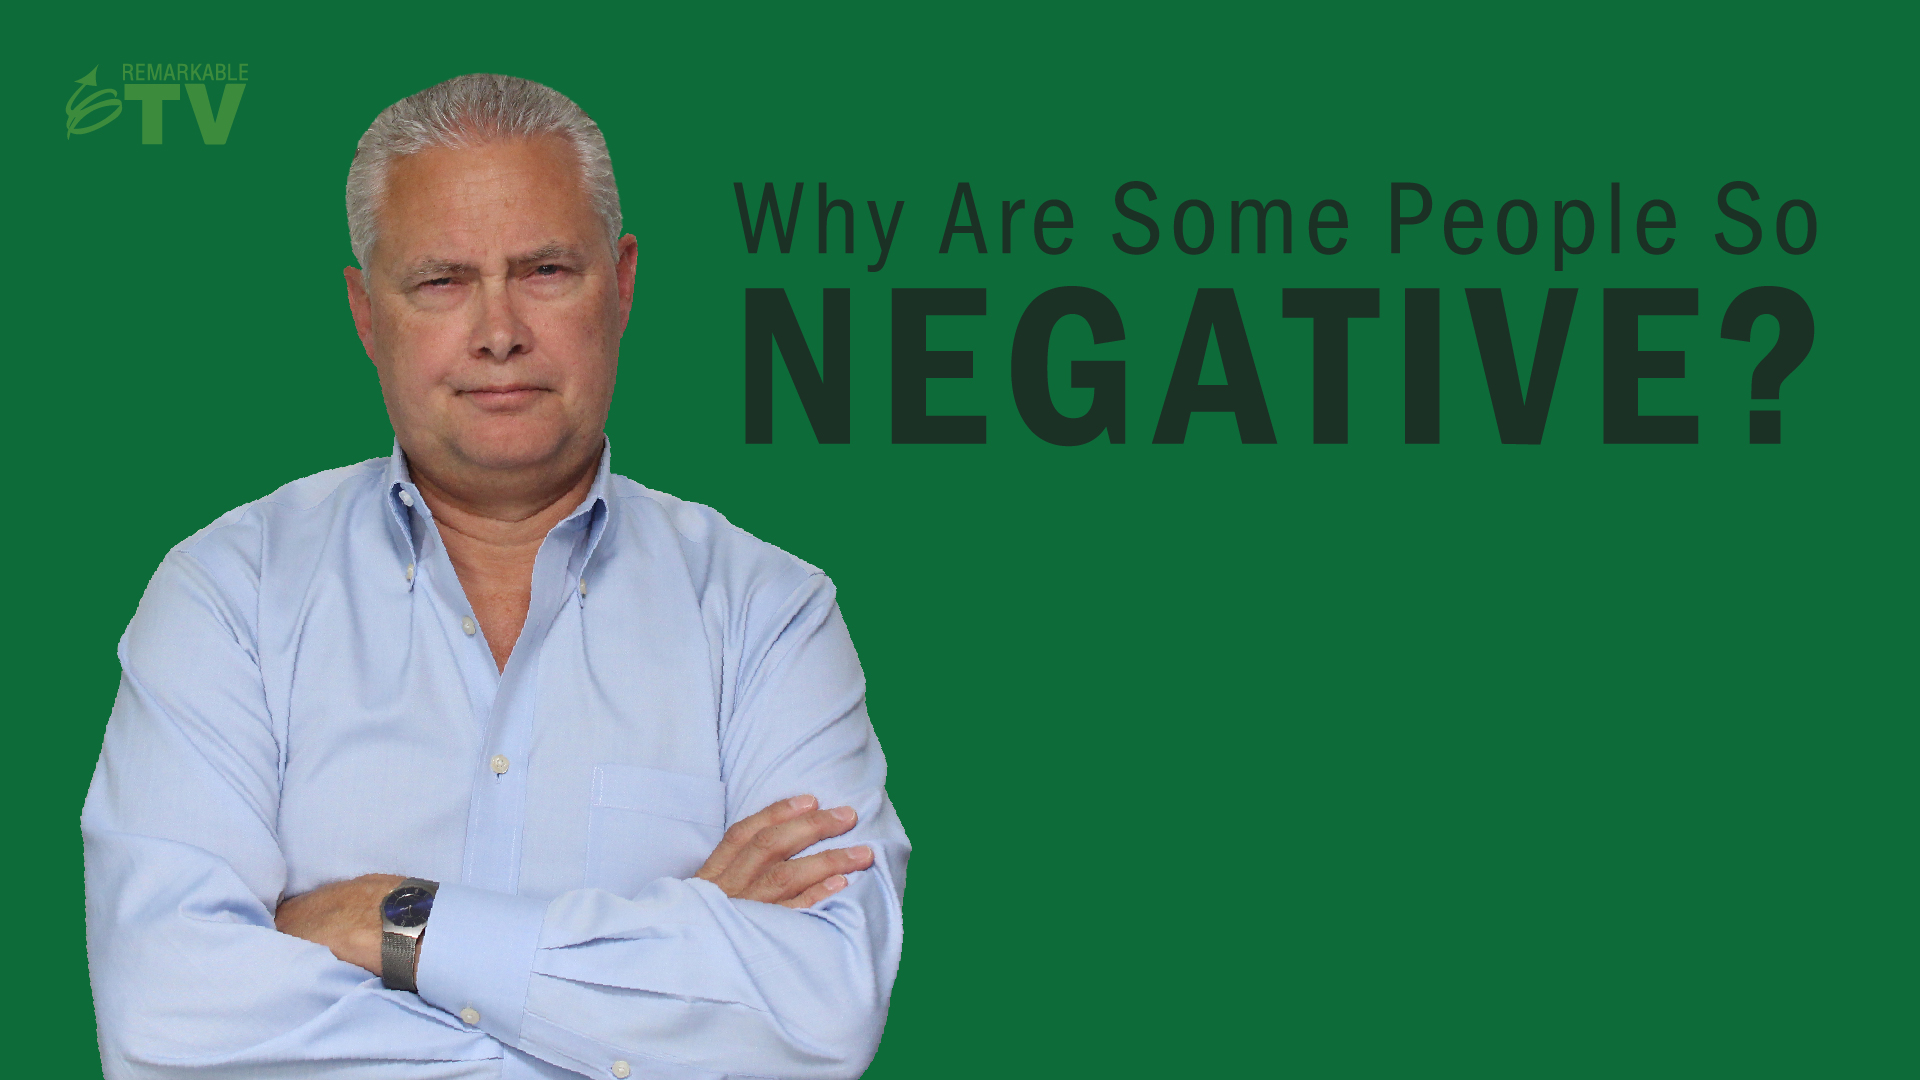 Video Splash Image: Why Are Some People So Negative?